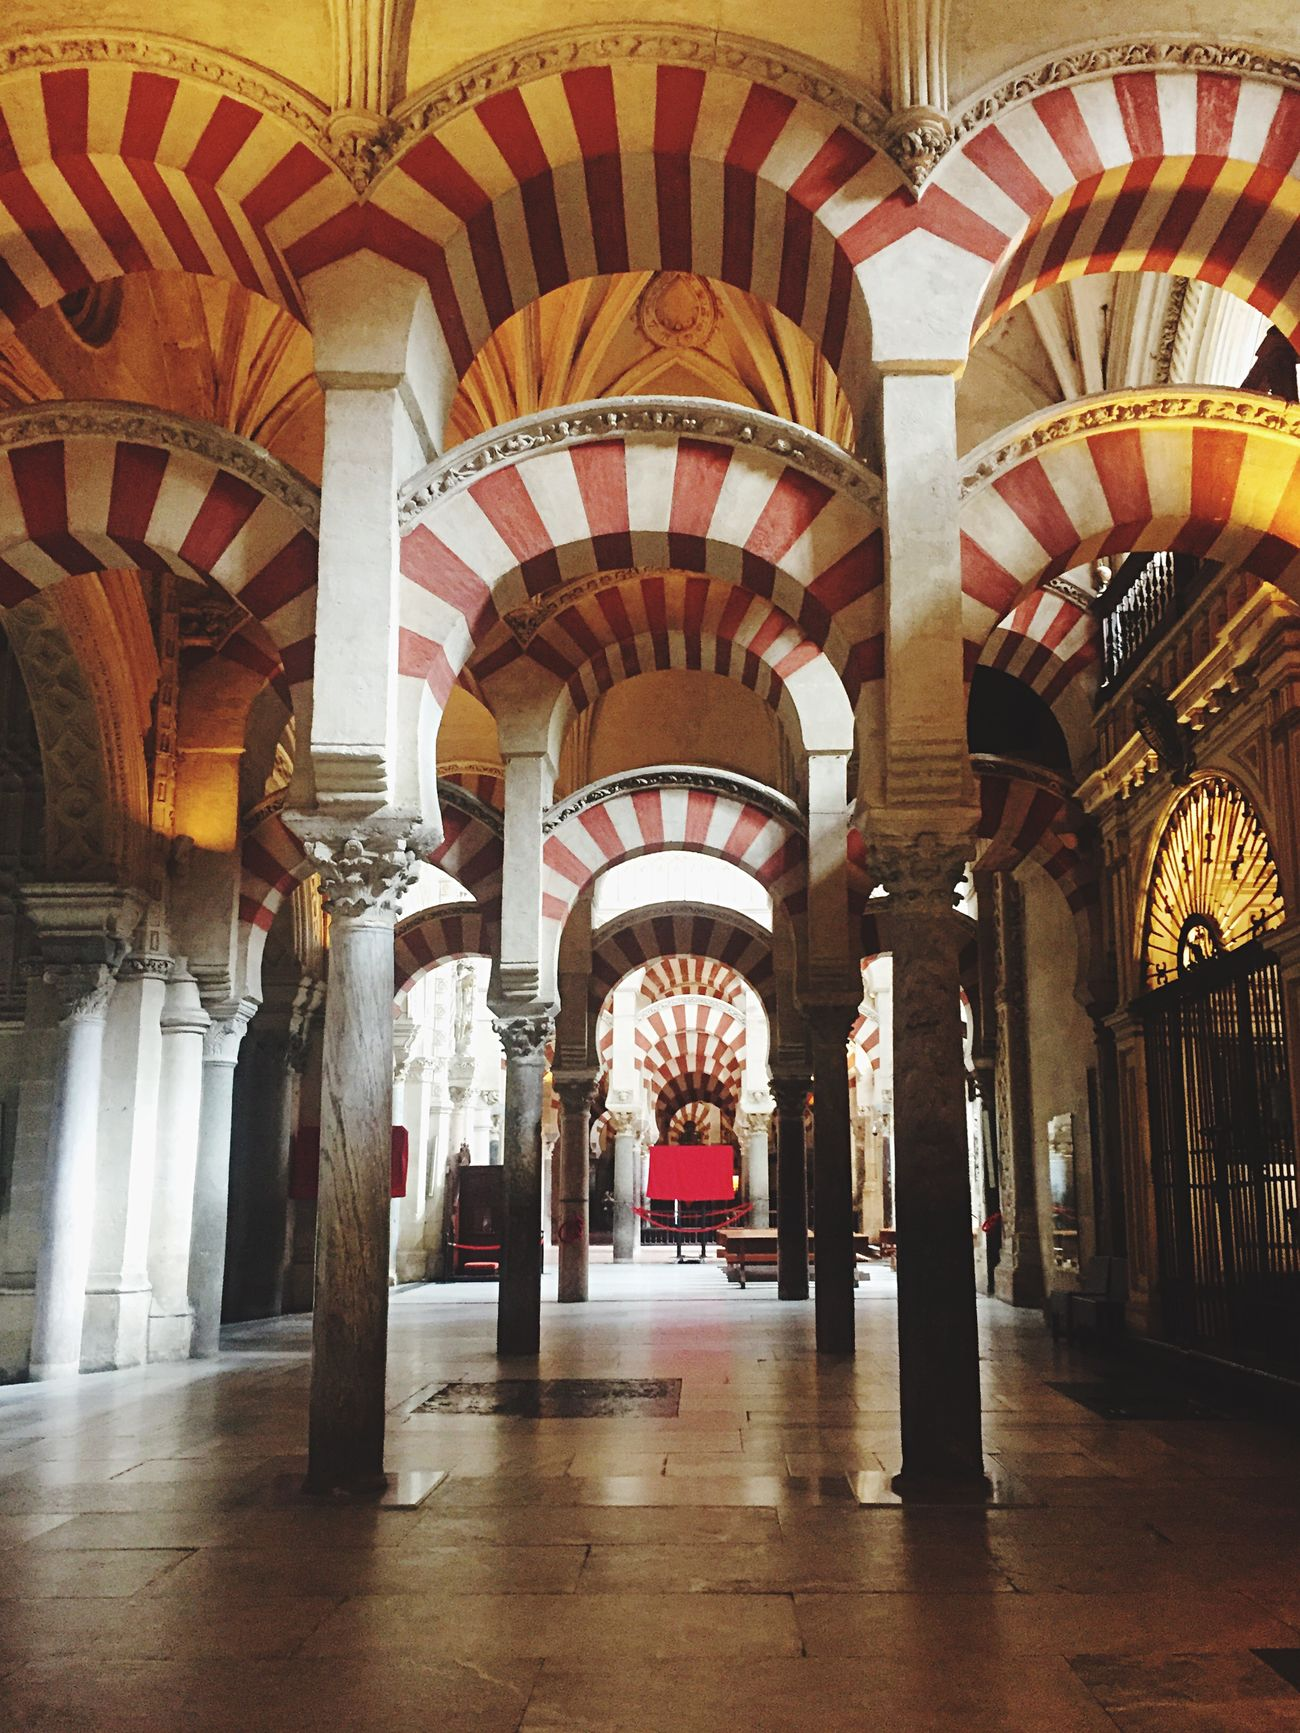 Day 3 Traveling Light And Shadow Architecture_collection EyeEm Gallery EyeEm Best Shots EyeEmBestPics Eyemphotography SPAIN Colors Photography Religion Arabic View Art Mosque Chatedral Architecture Arch Architectural Detail Red